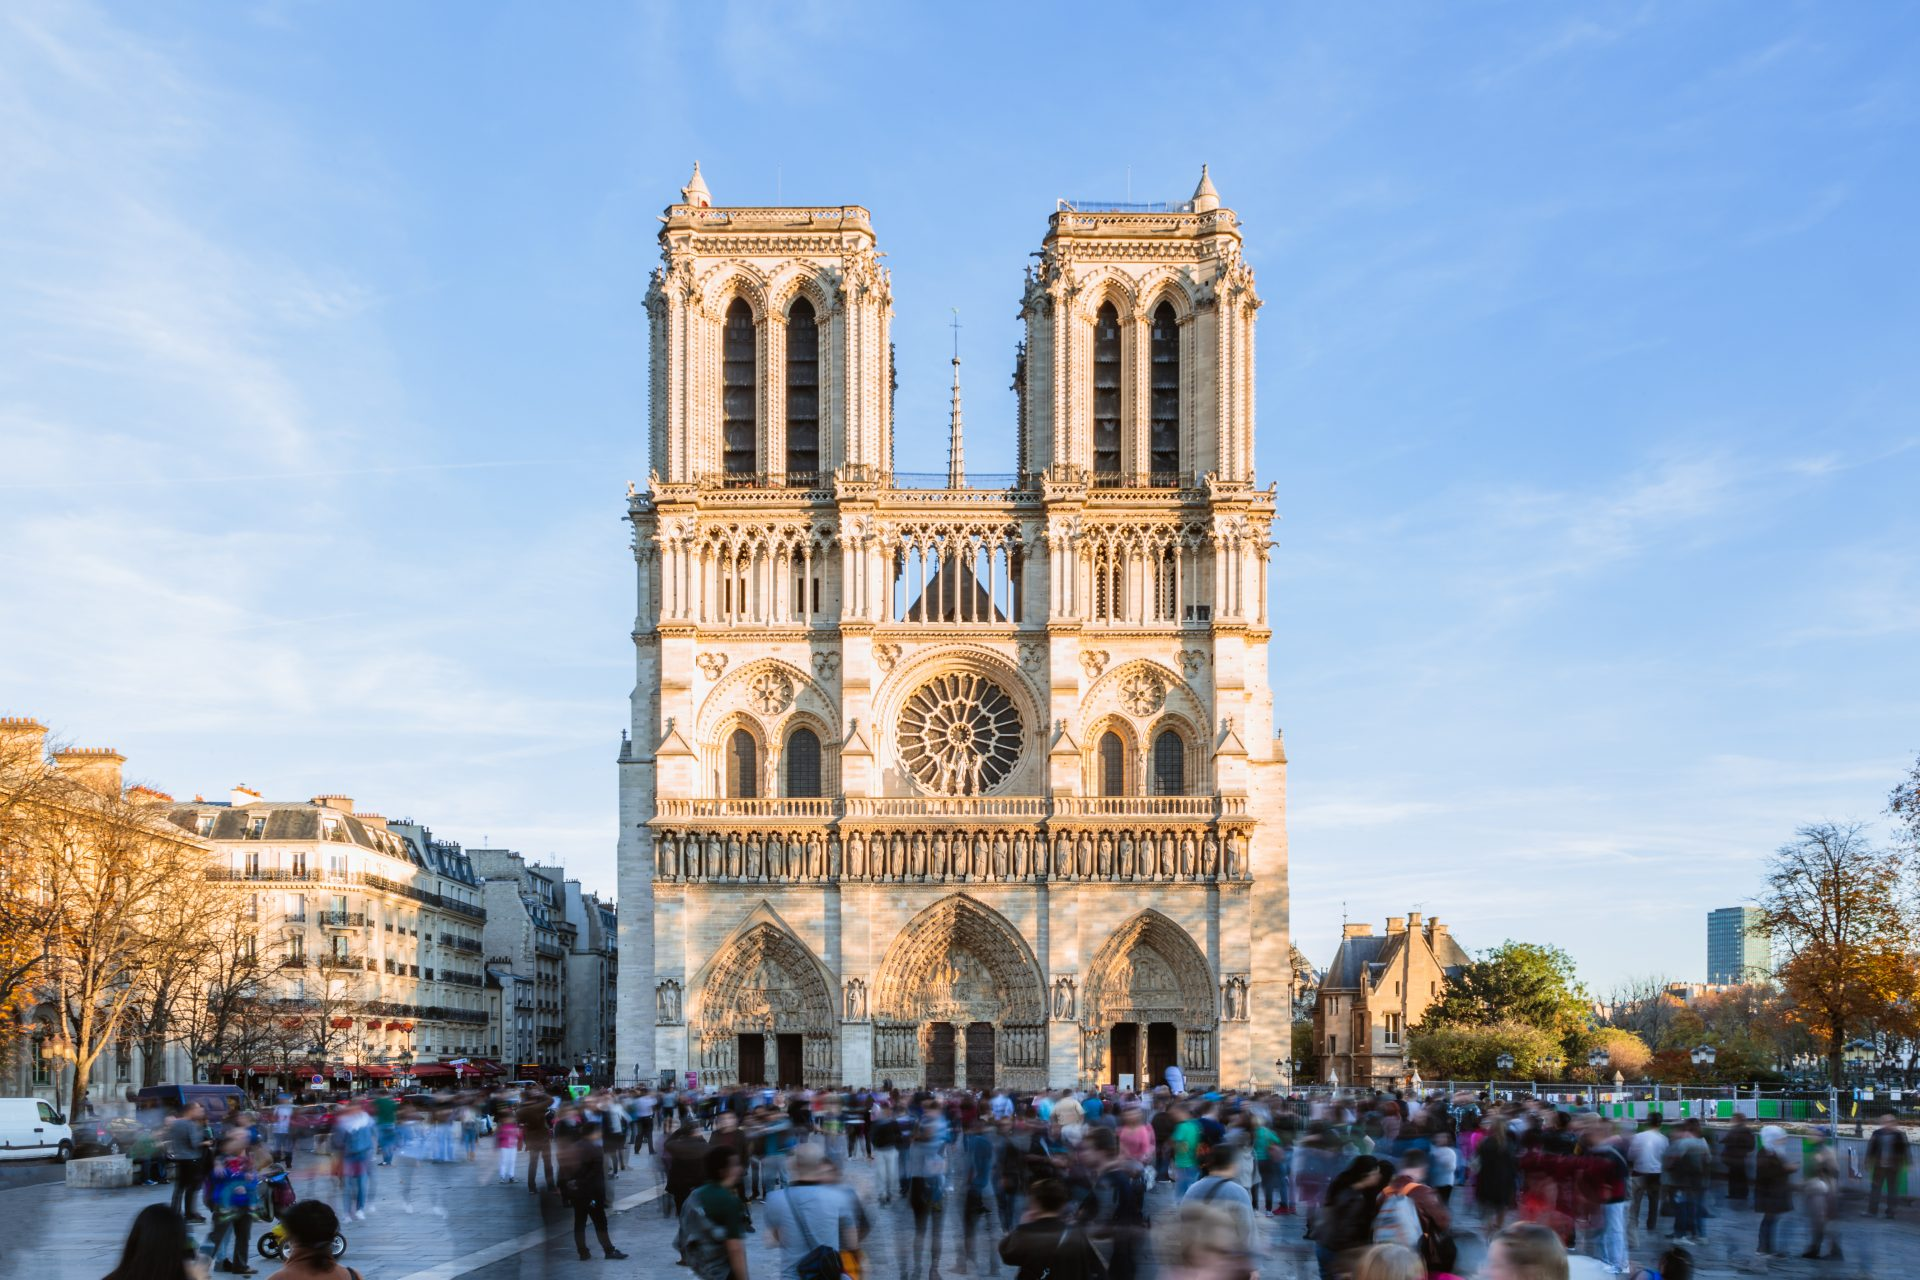 The world's most visited historic buildings